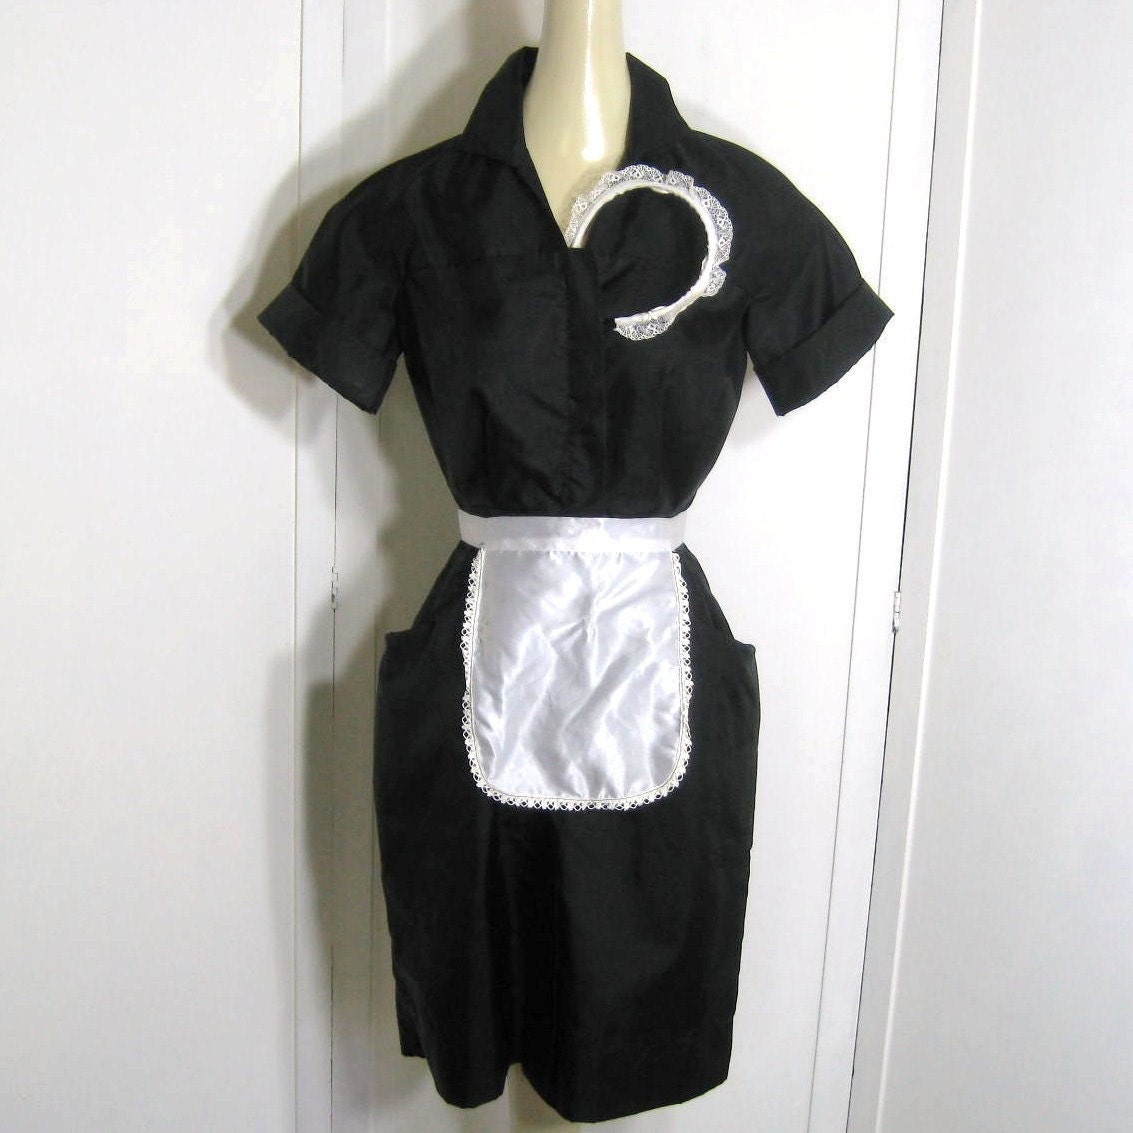 Vintage 50s 60s Waitress Uniform Dress And Accessories Lace